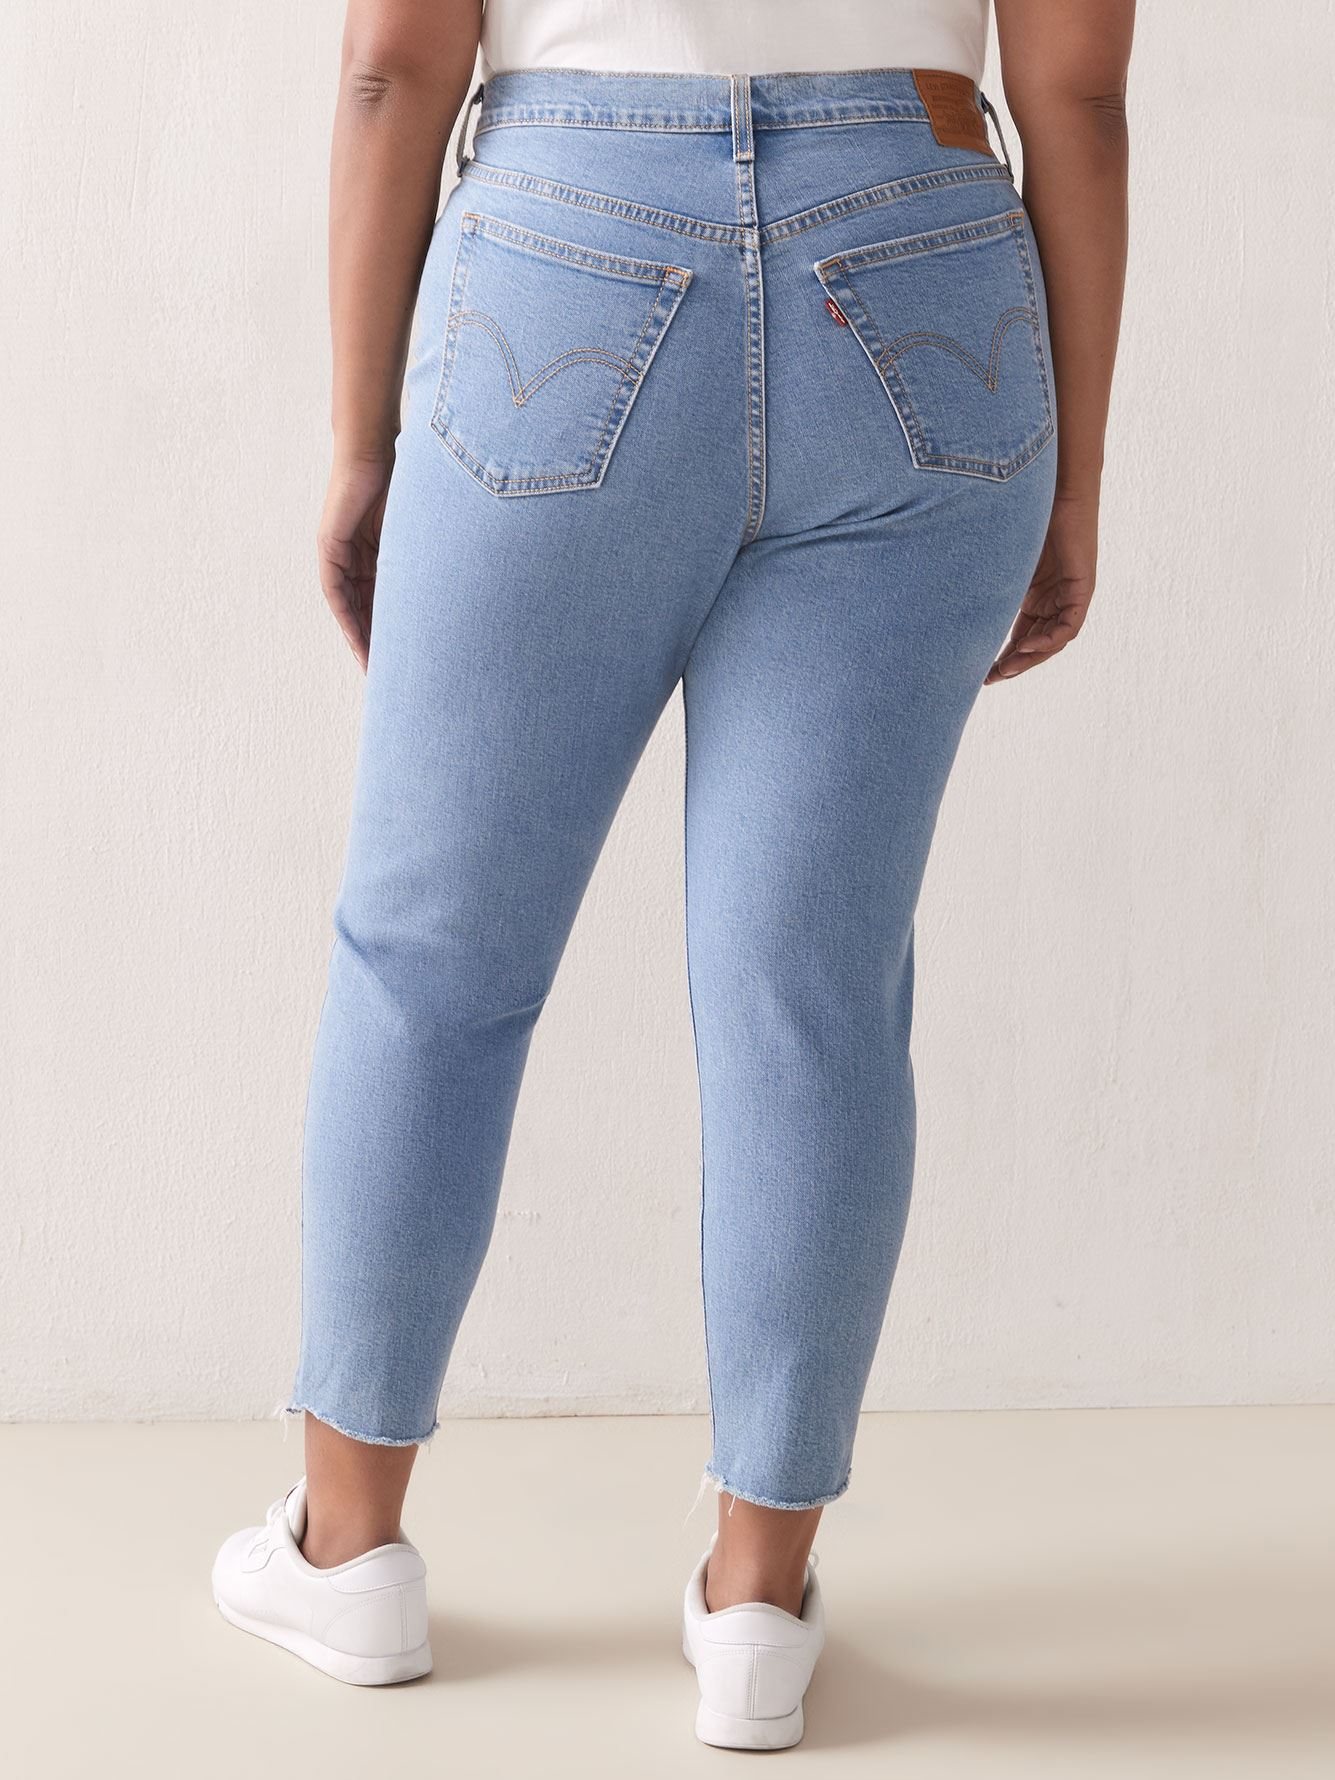 Stretchy High-Rise Wedgie Skinny Jean - Levi's Premium